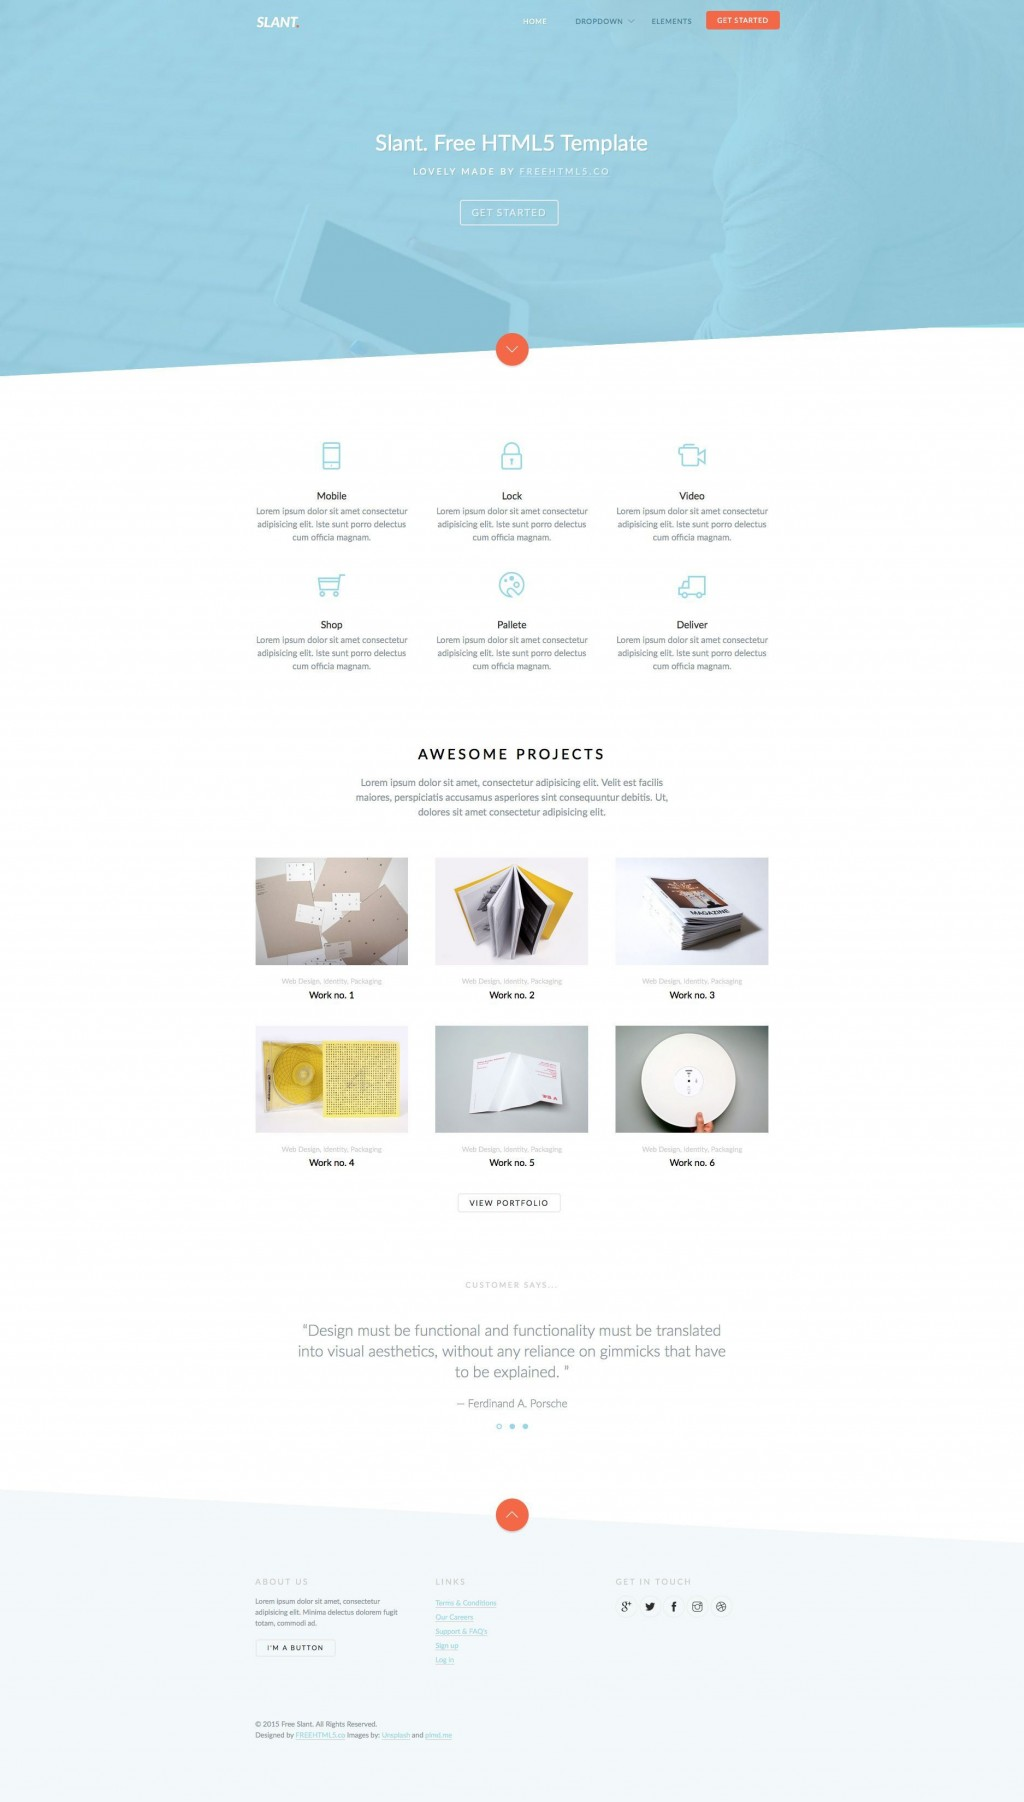 003 Formidable Free Responsive Landing Page Template Picture  Templates Pardot Html5Large